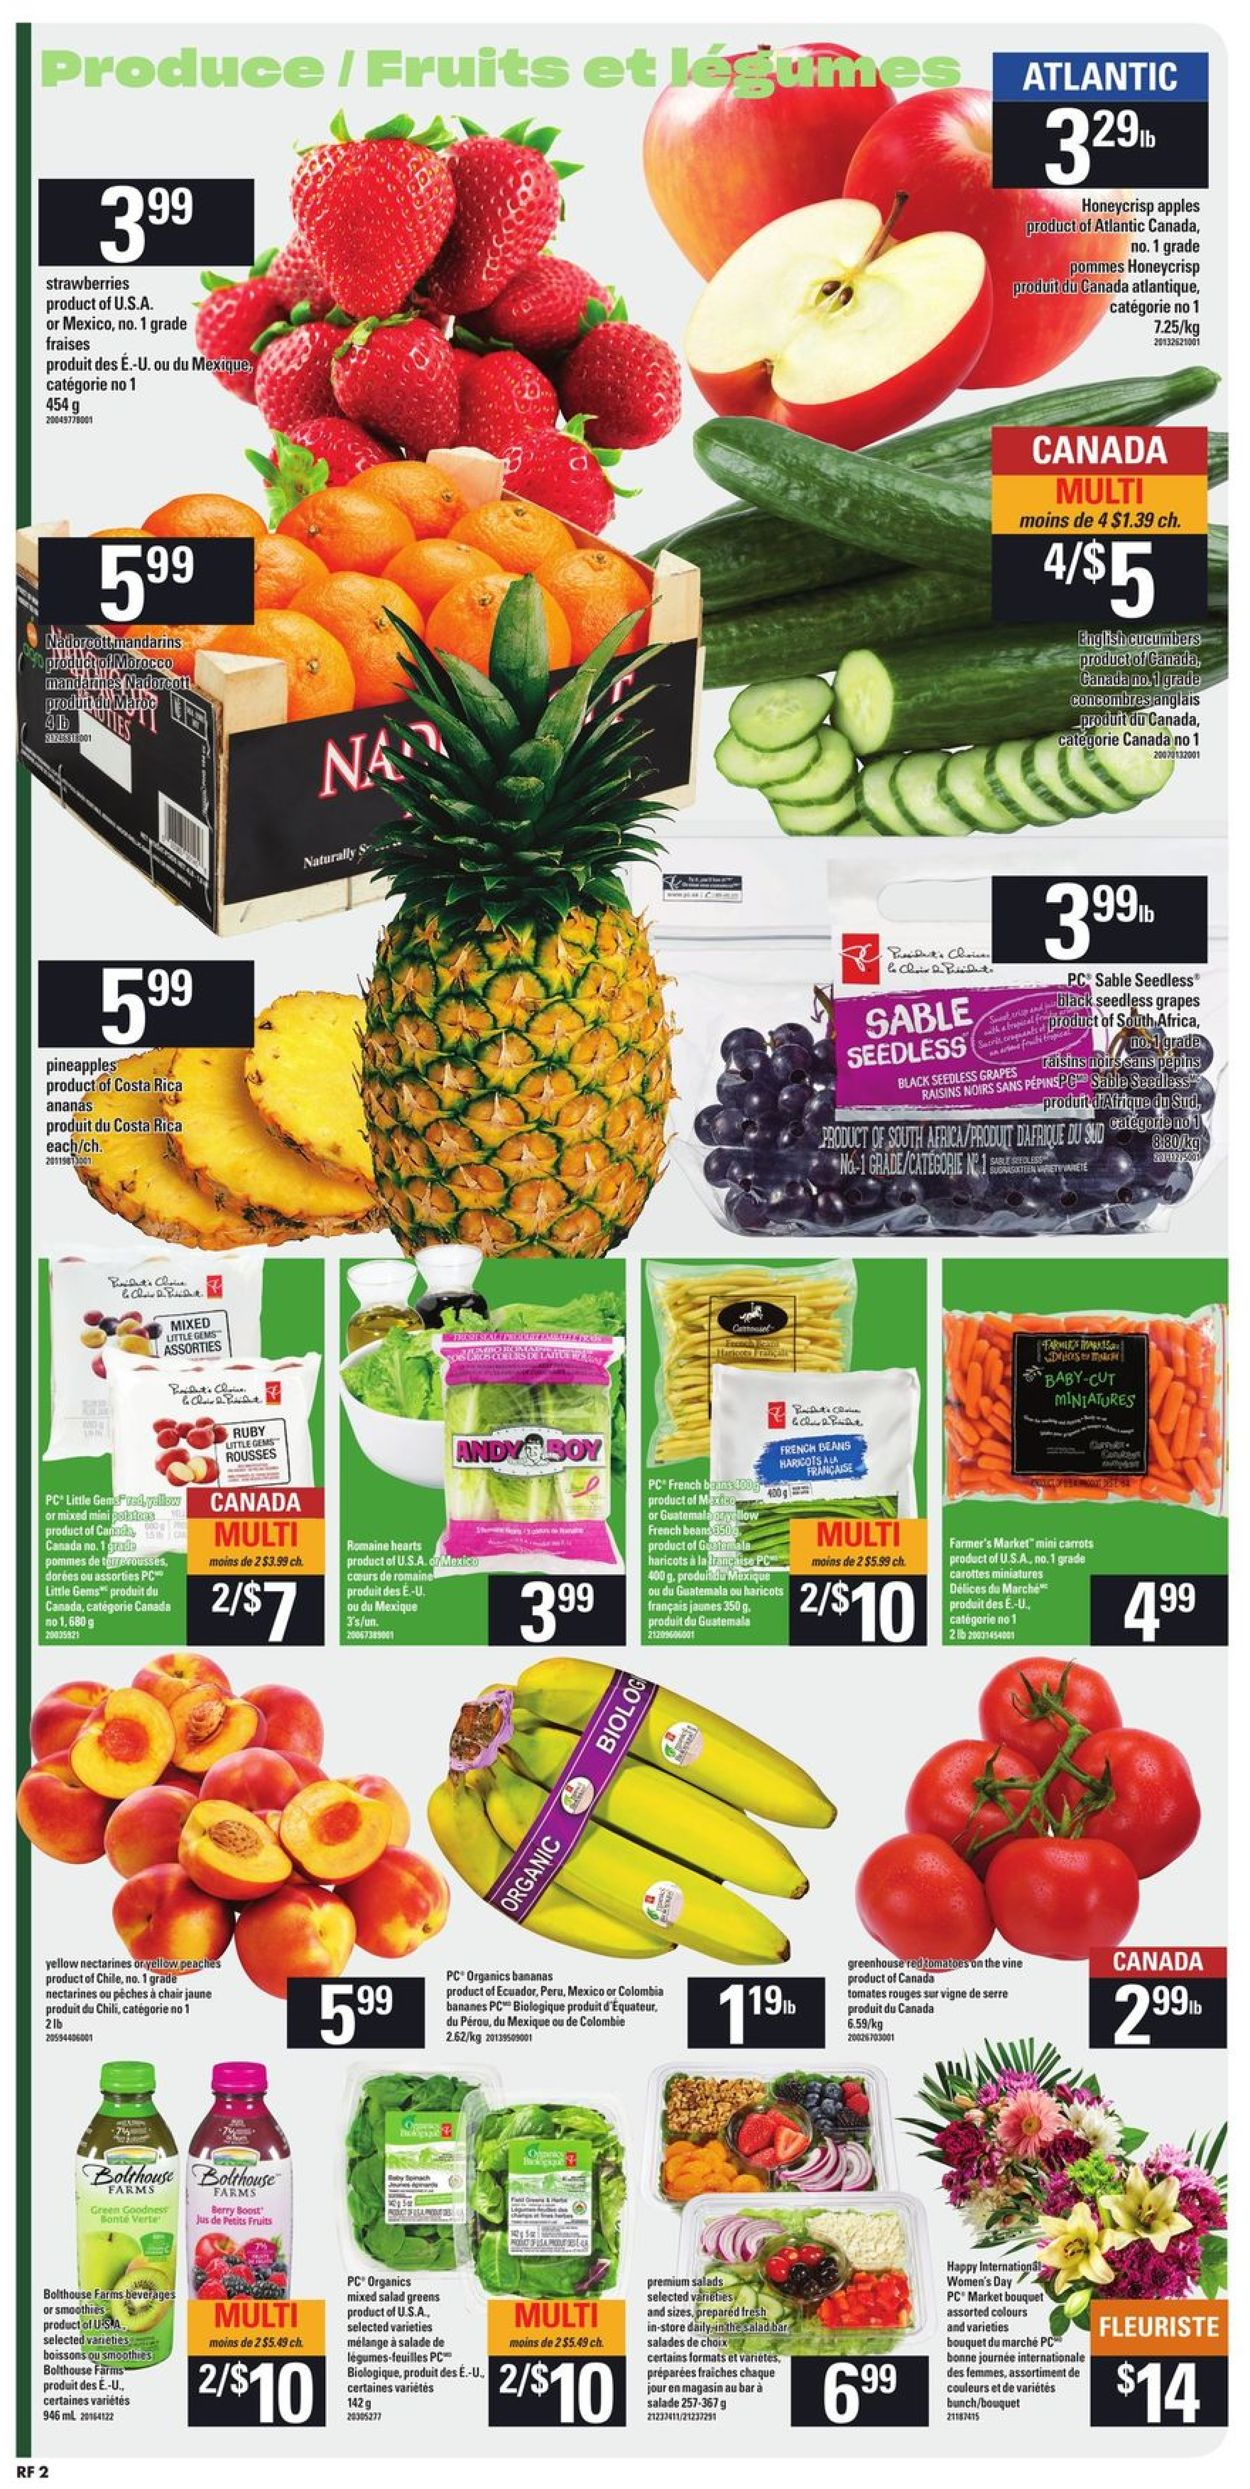 Atlantic Superstore Flyer - 03/05-03/11/2020 (Page 3)